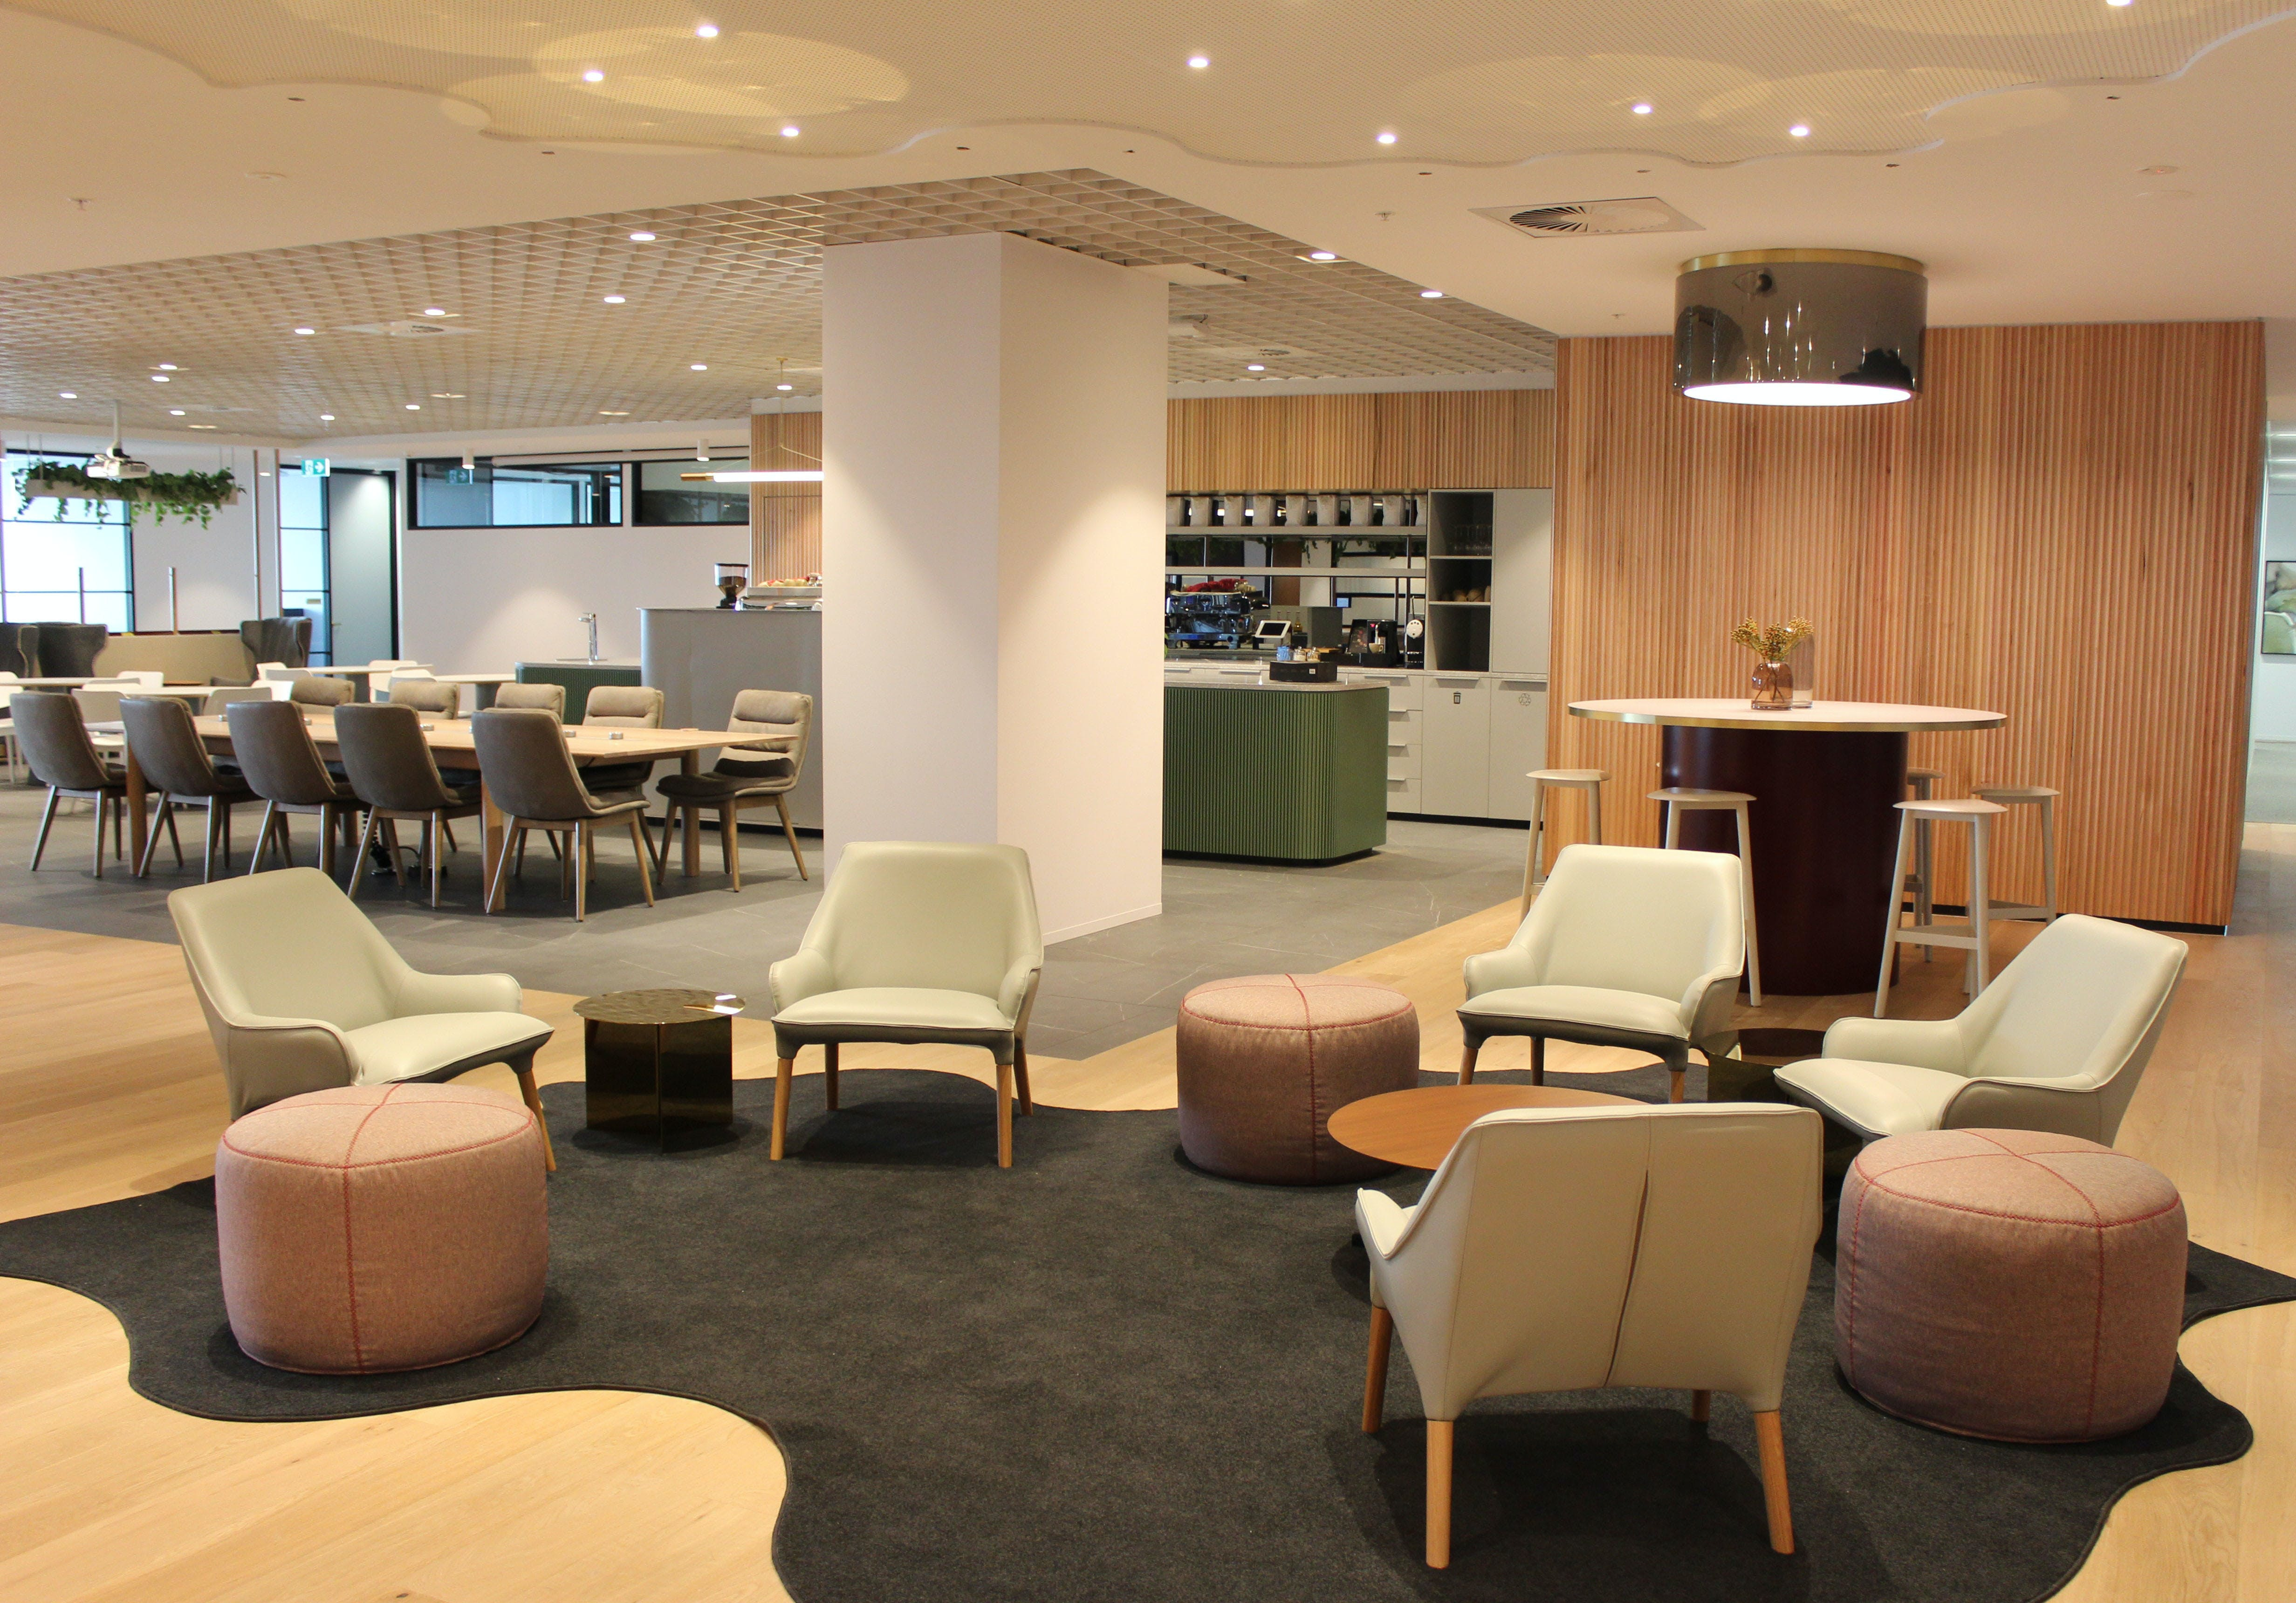 Room 23A, meeting room at The Executive Centre - Collins Square Meeting Rooms, image 4